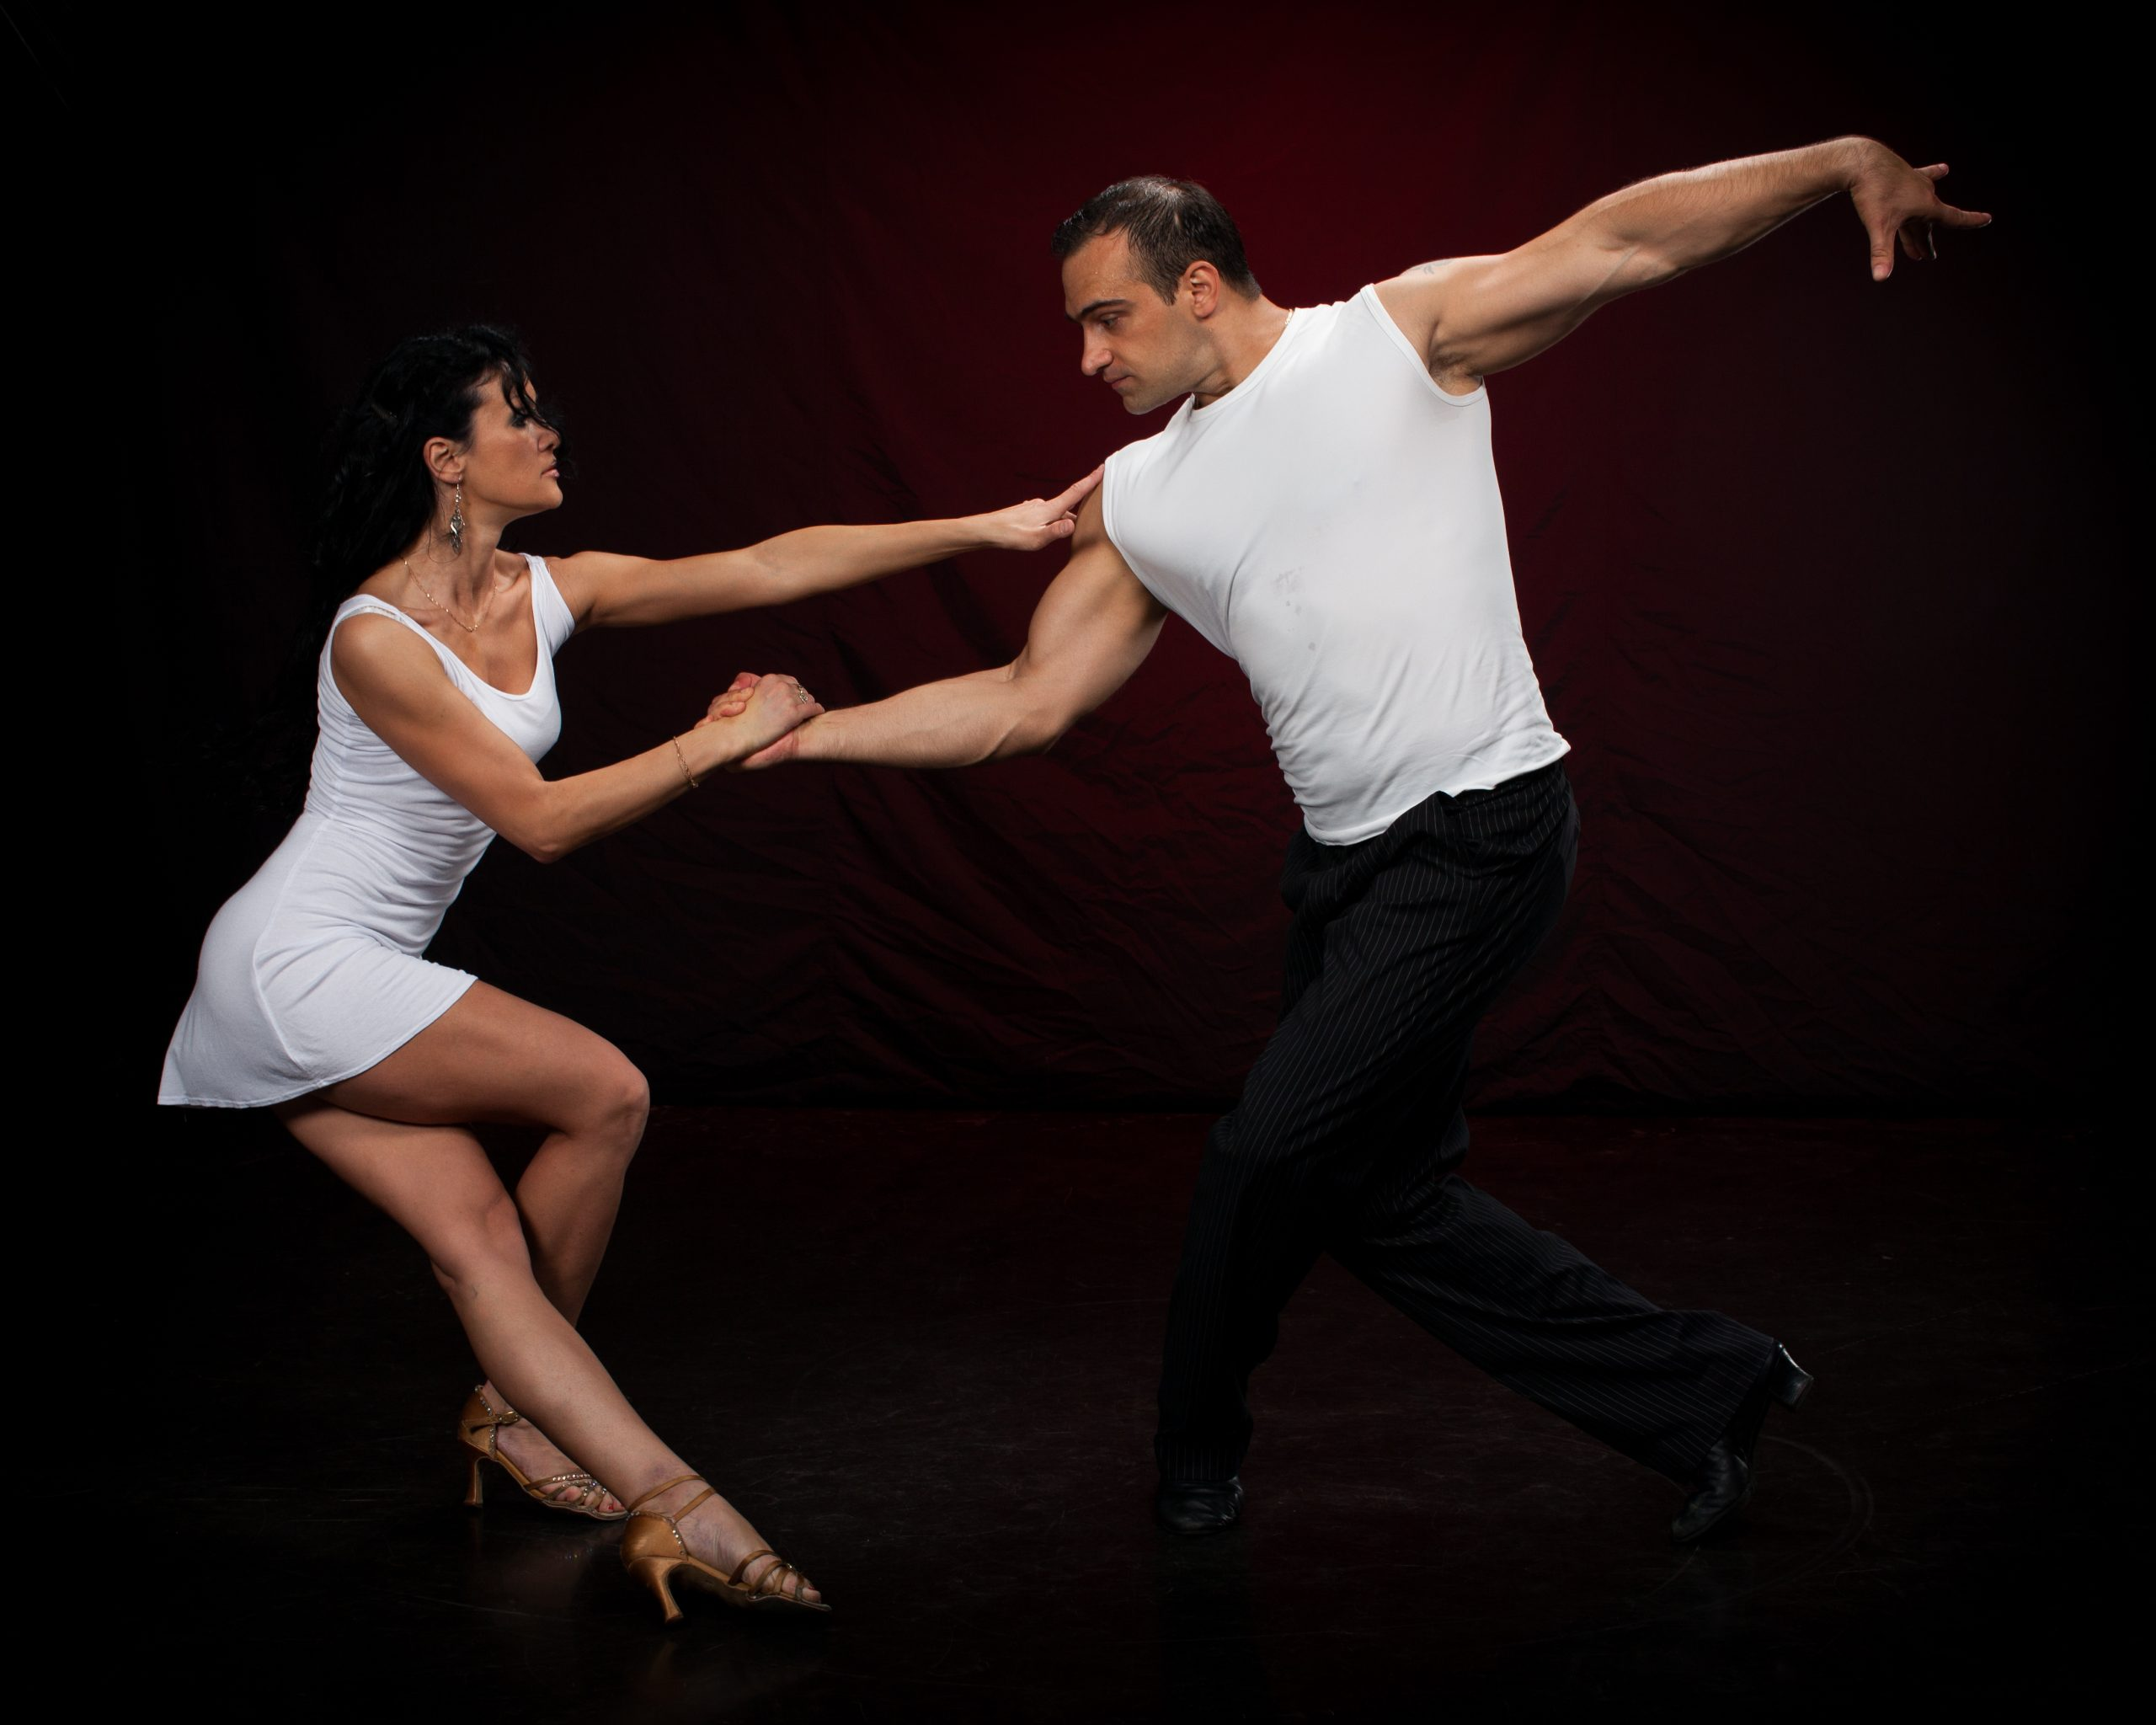 Partner Dance Salsa Dance Instructor Training and Certification